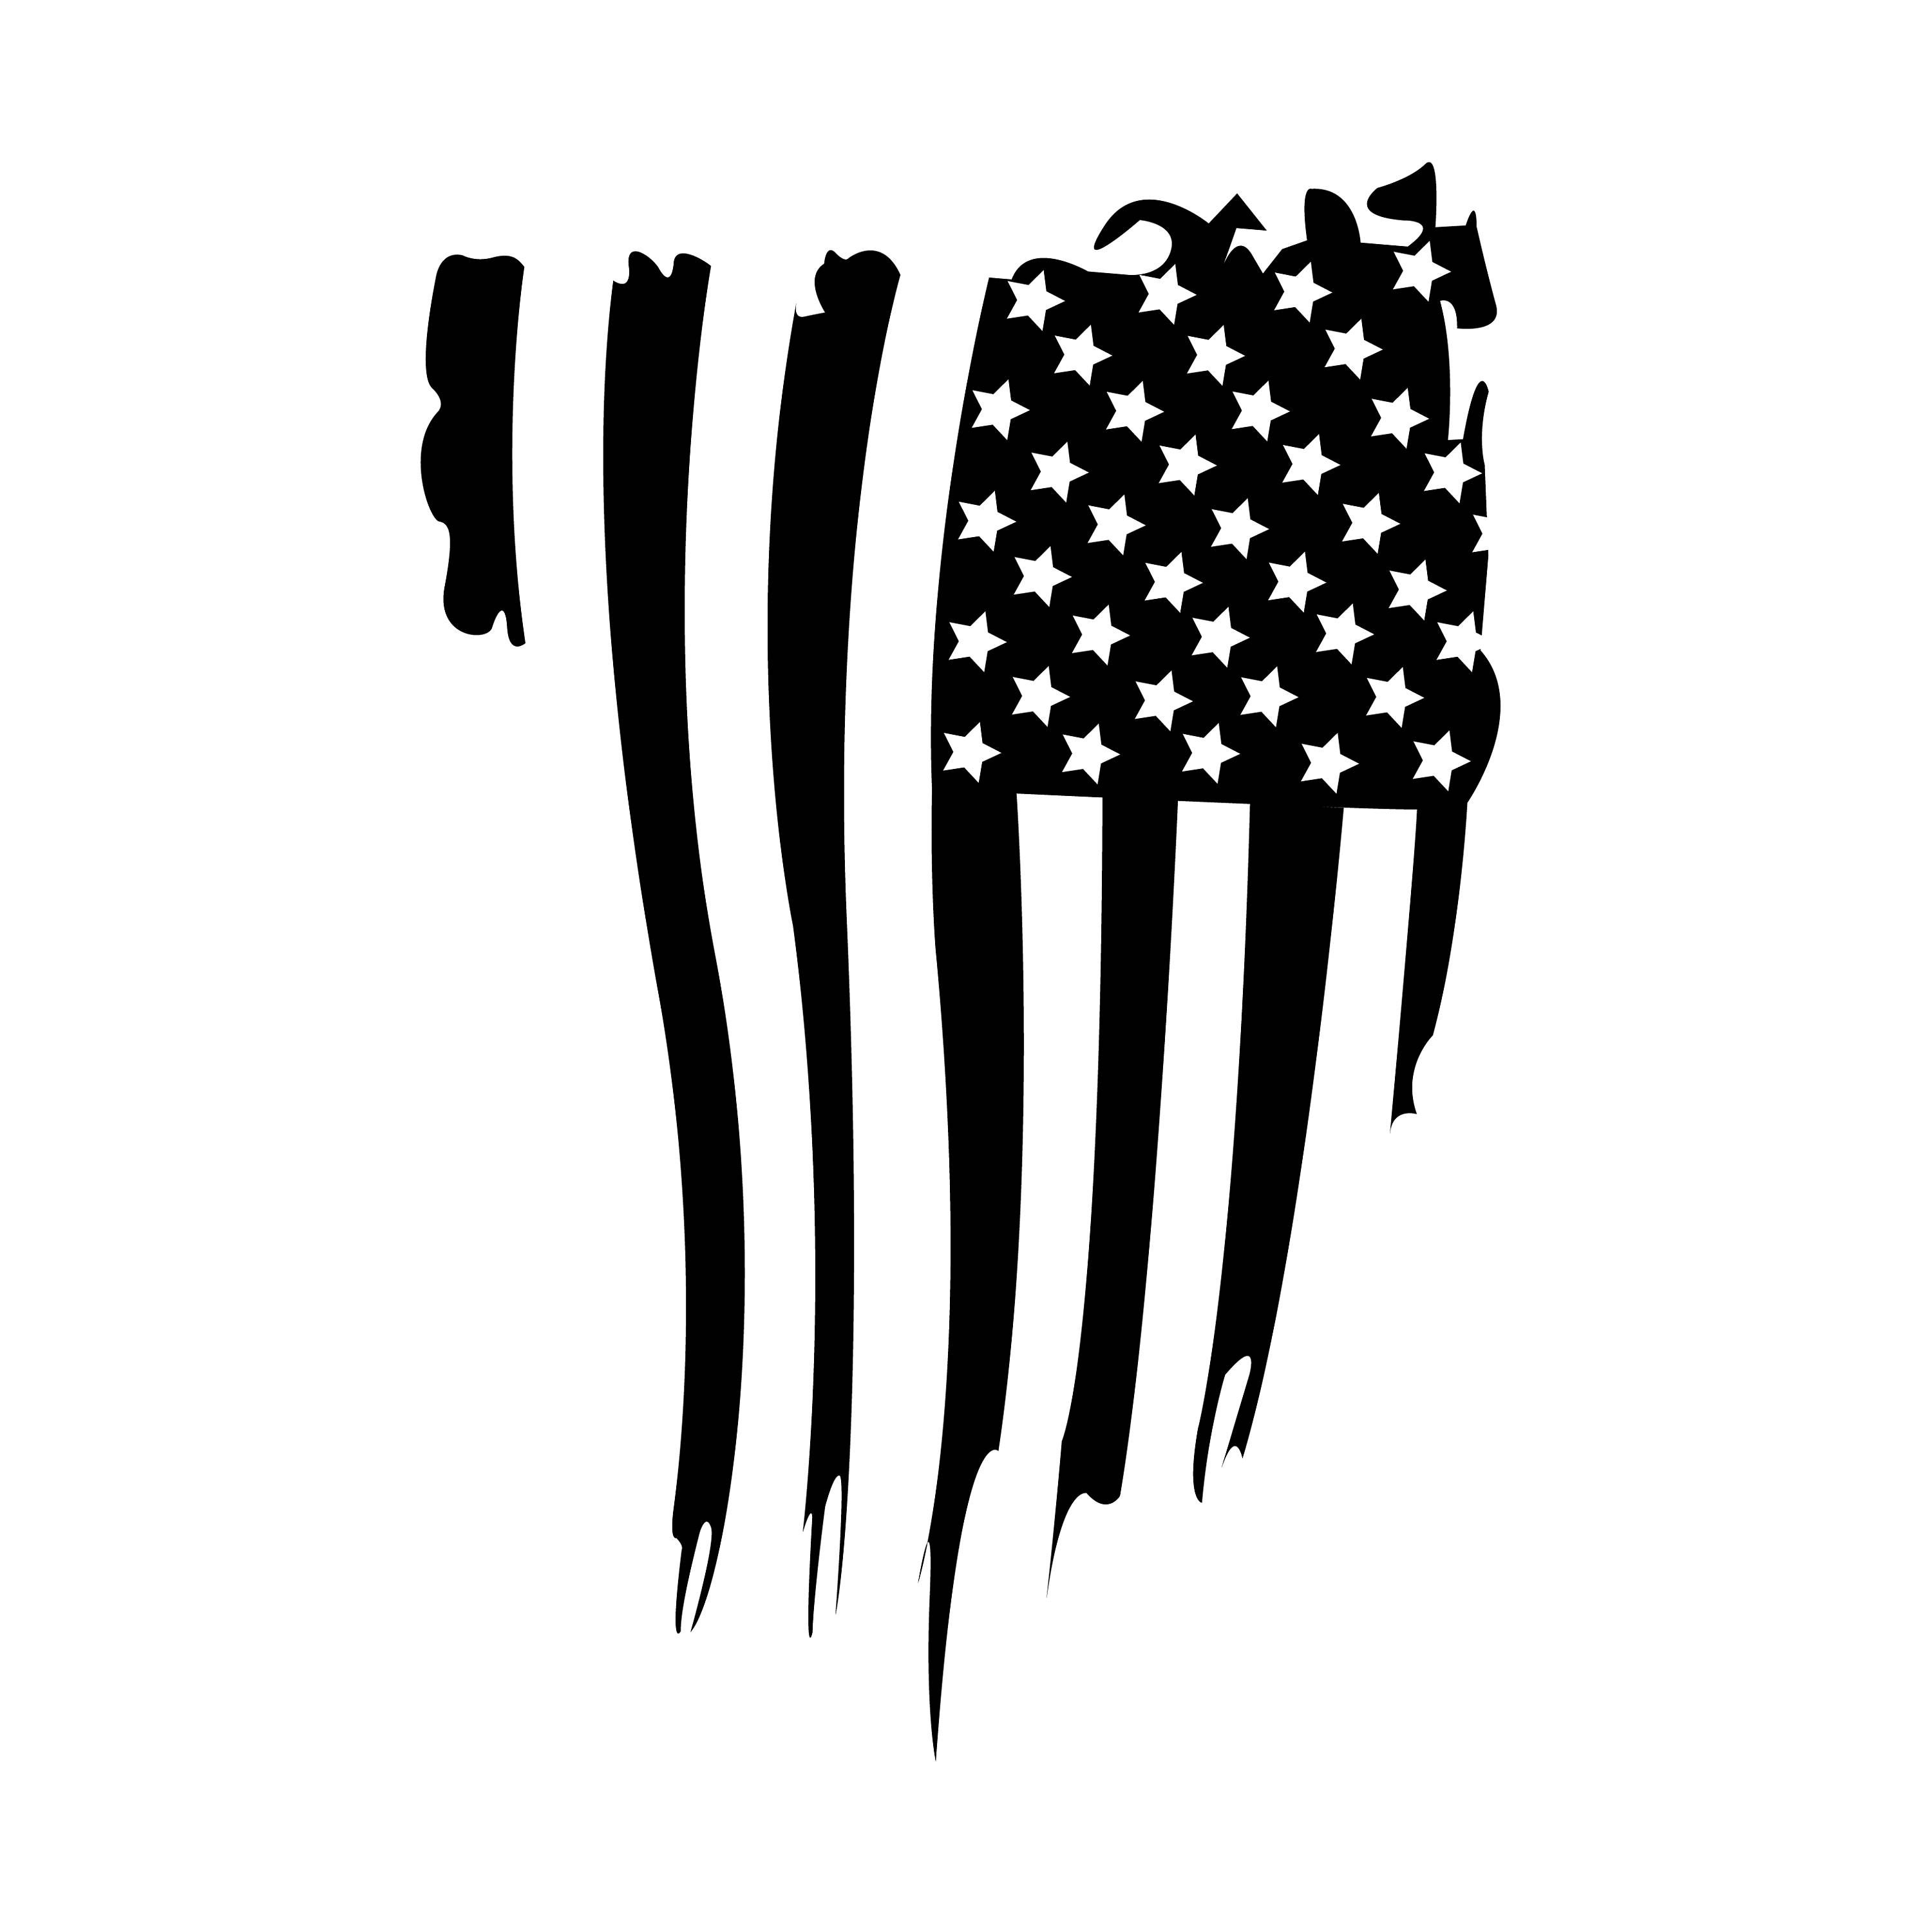 Distressed Flag Decal Etsy In 2020 Flag Decal American Flag Decal Black And White Flag